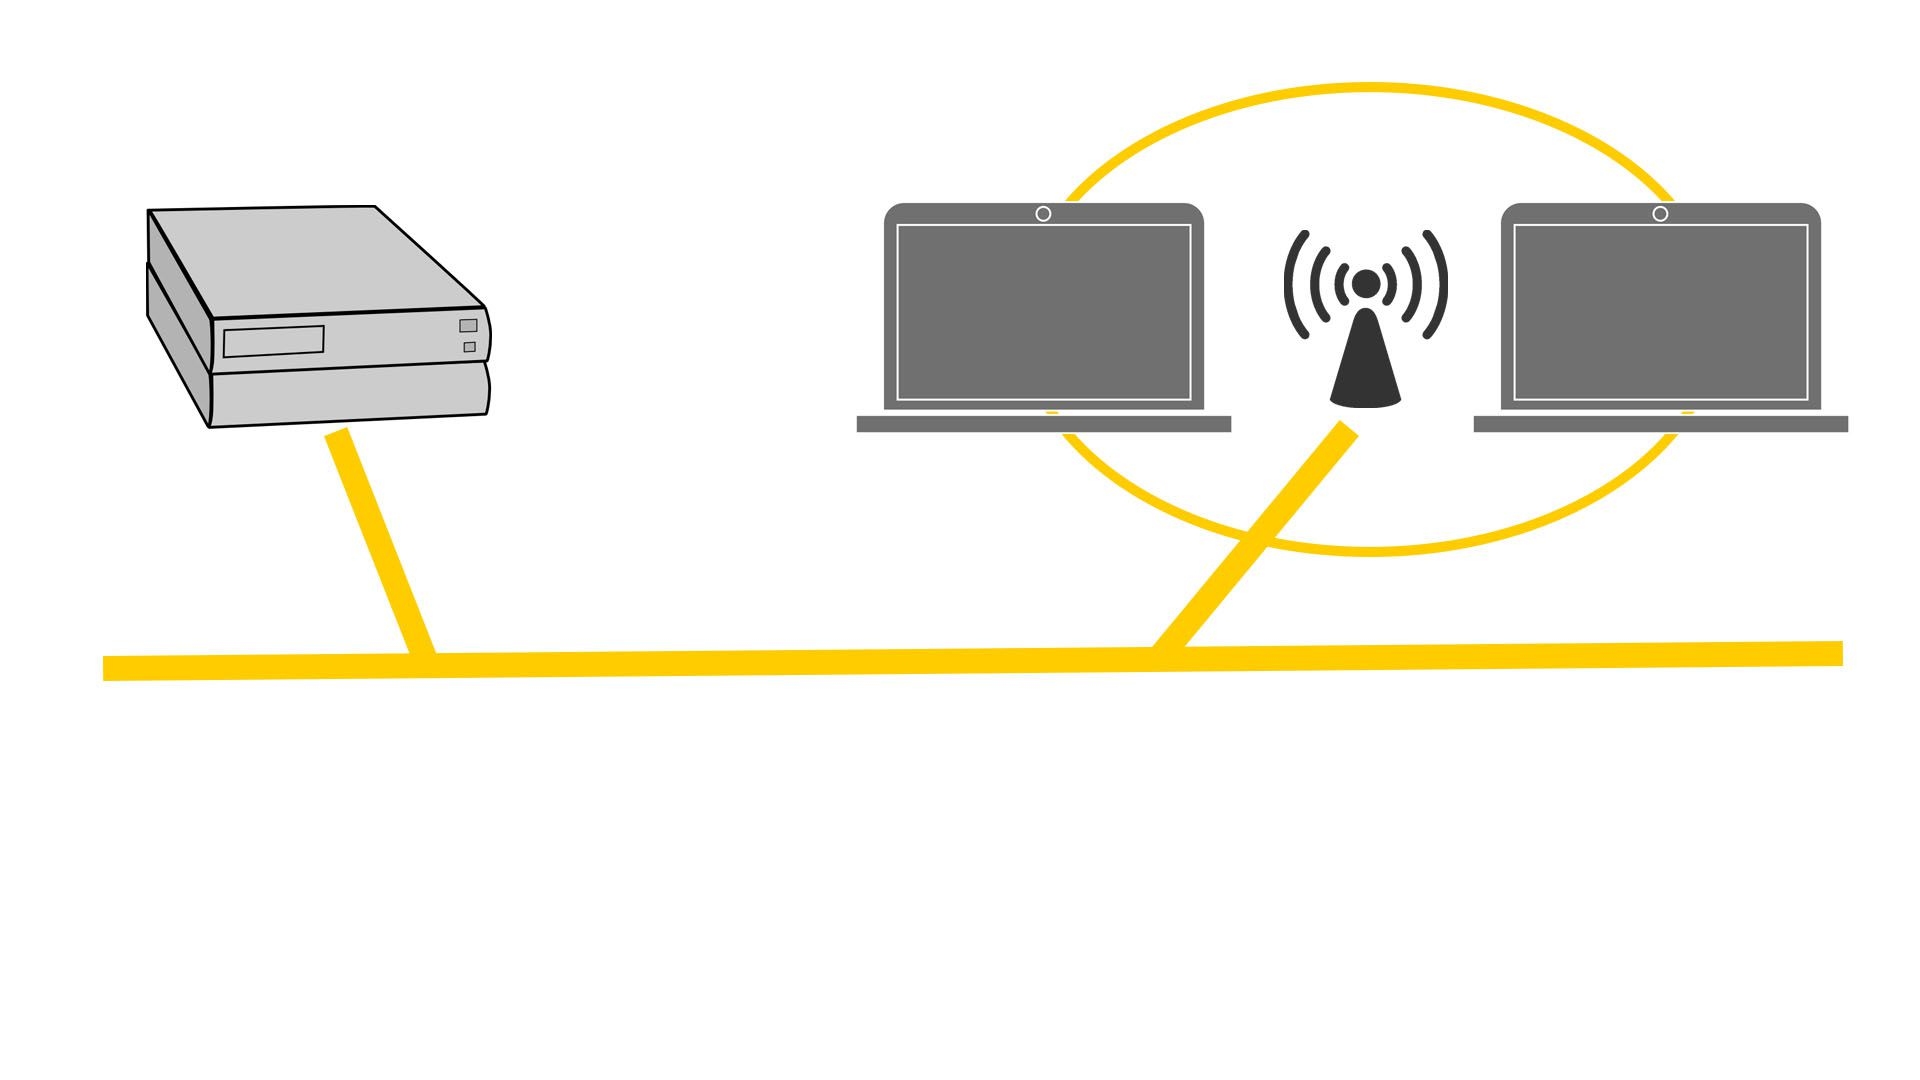 hight resolution of an illustration of a wireless topology showing a server 2 laptops and a wap